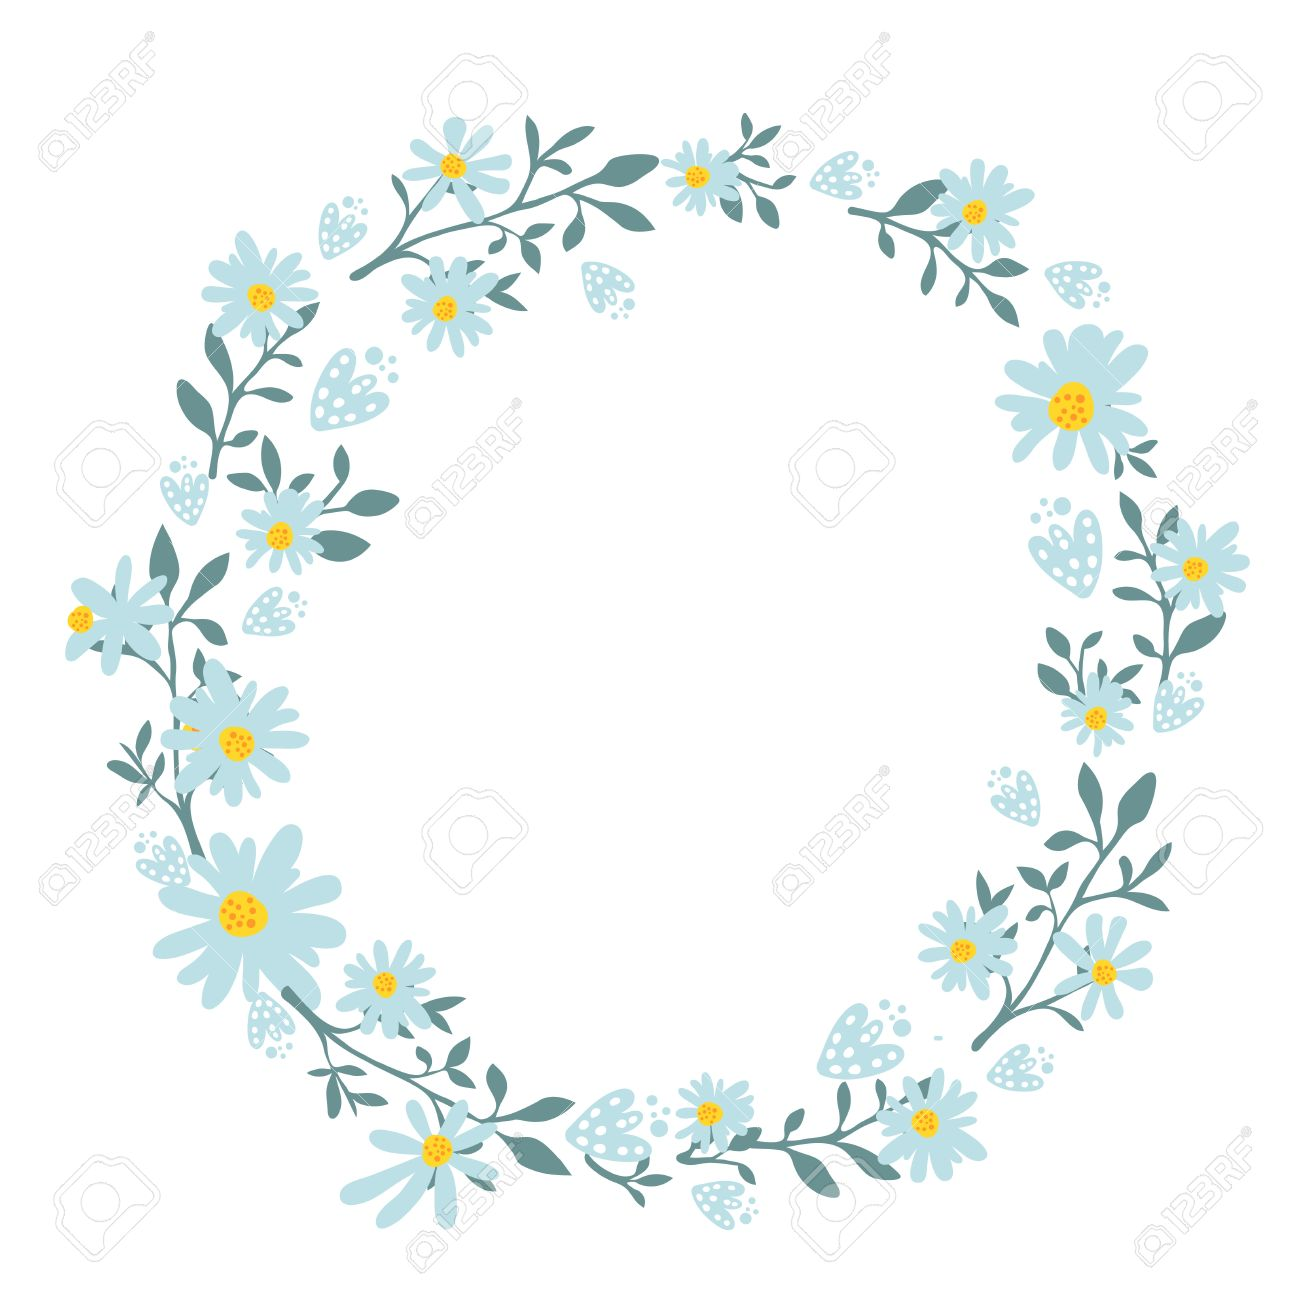 Hand Drawn Spring Wreath With Camomile Flowers. Round Frame For ...